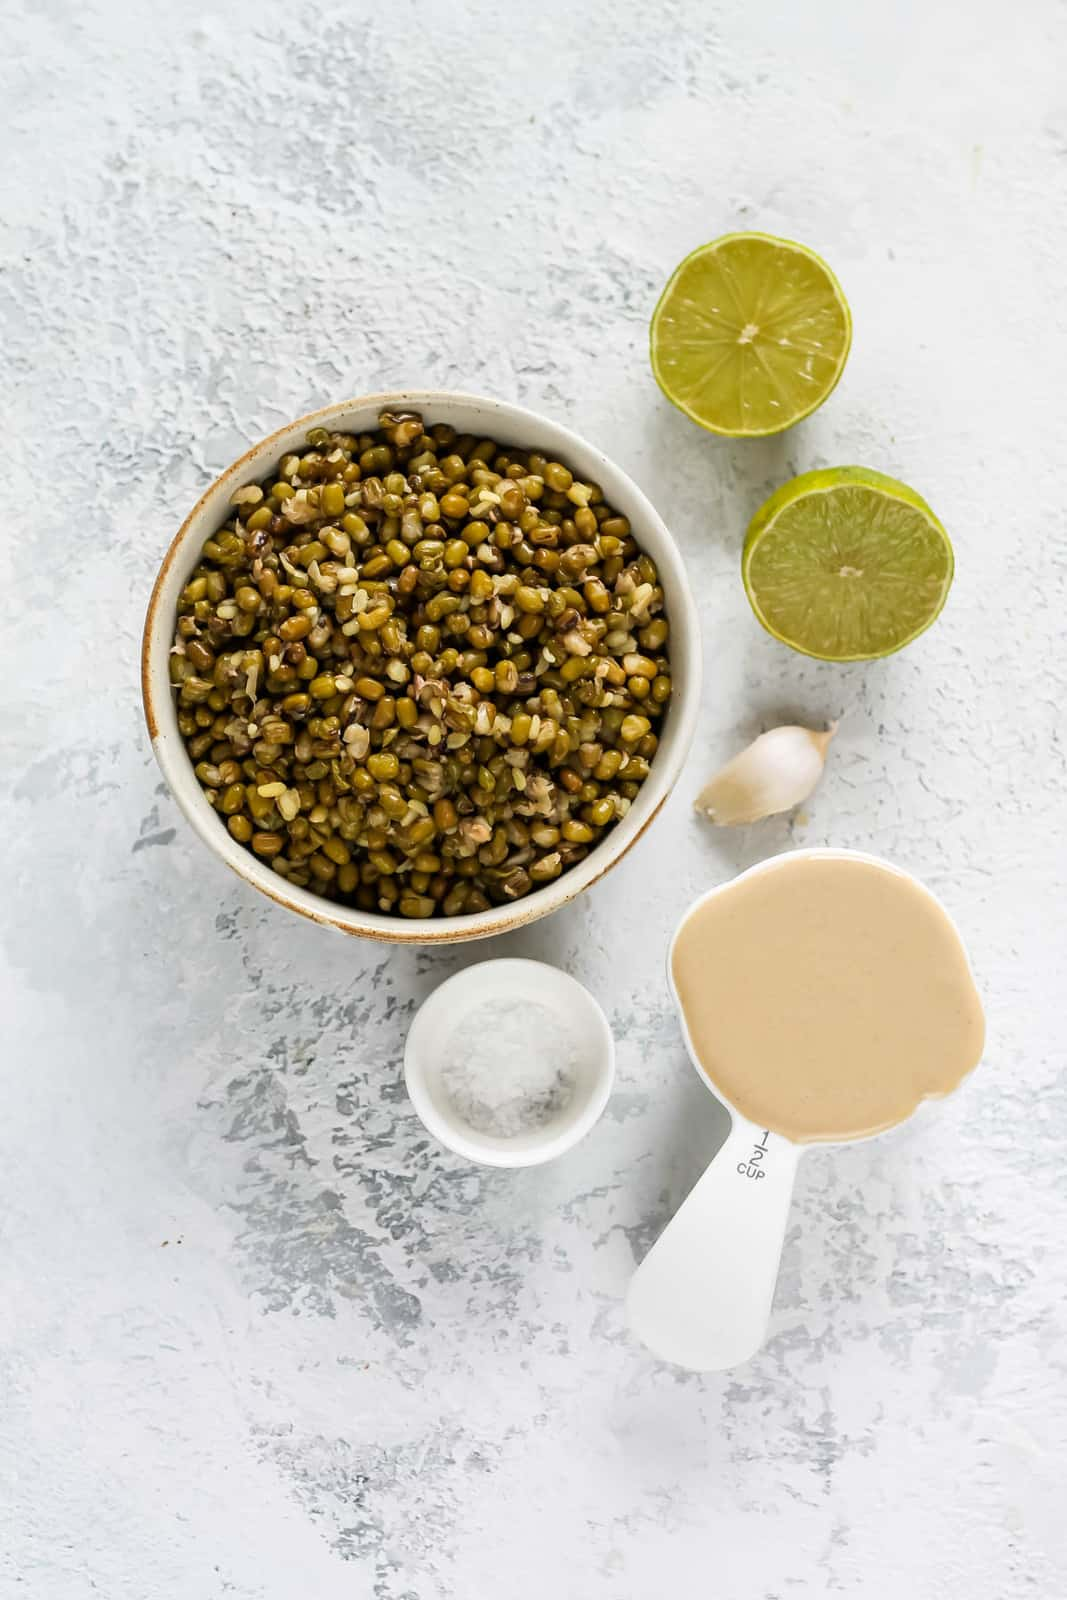 cooked mung beans, tahini, limes, salt, and garlic on a grey background